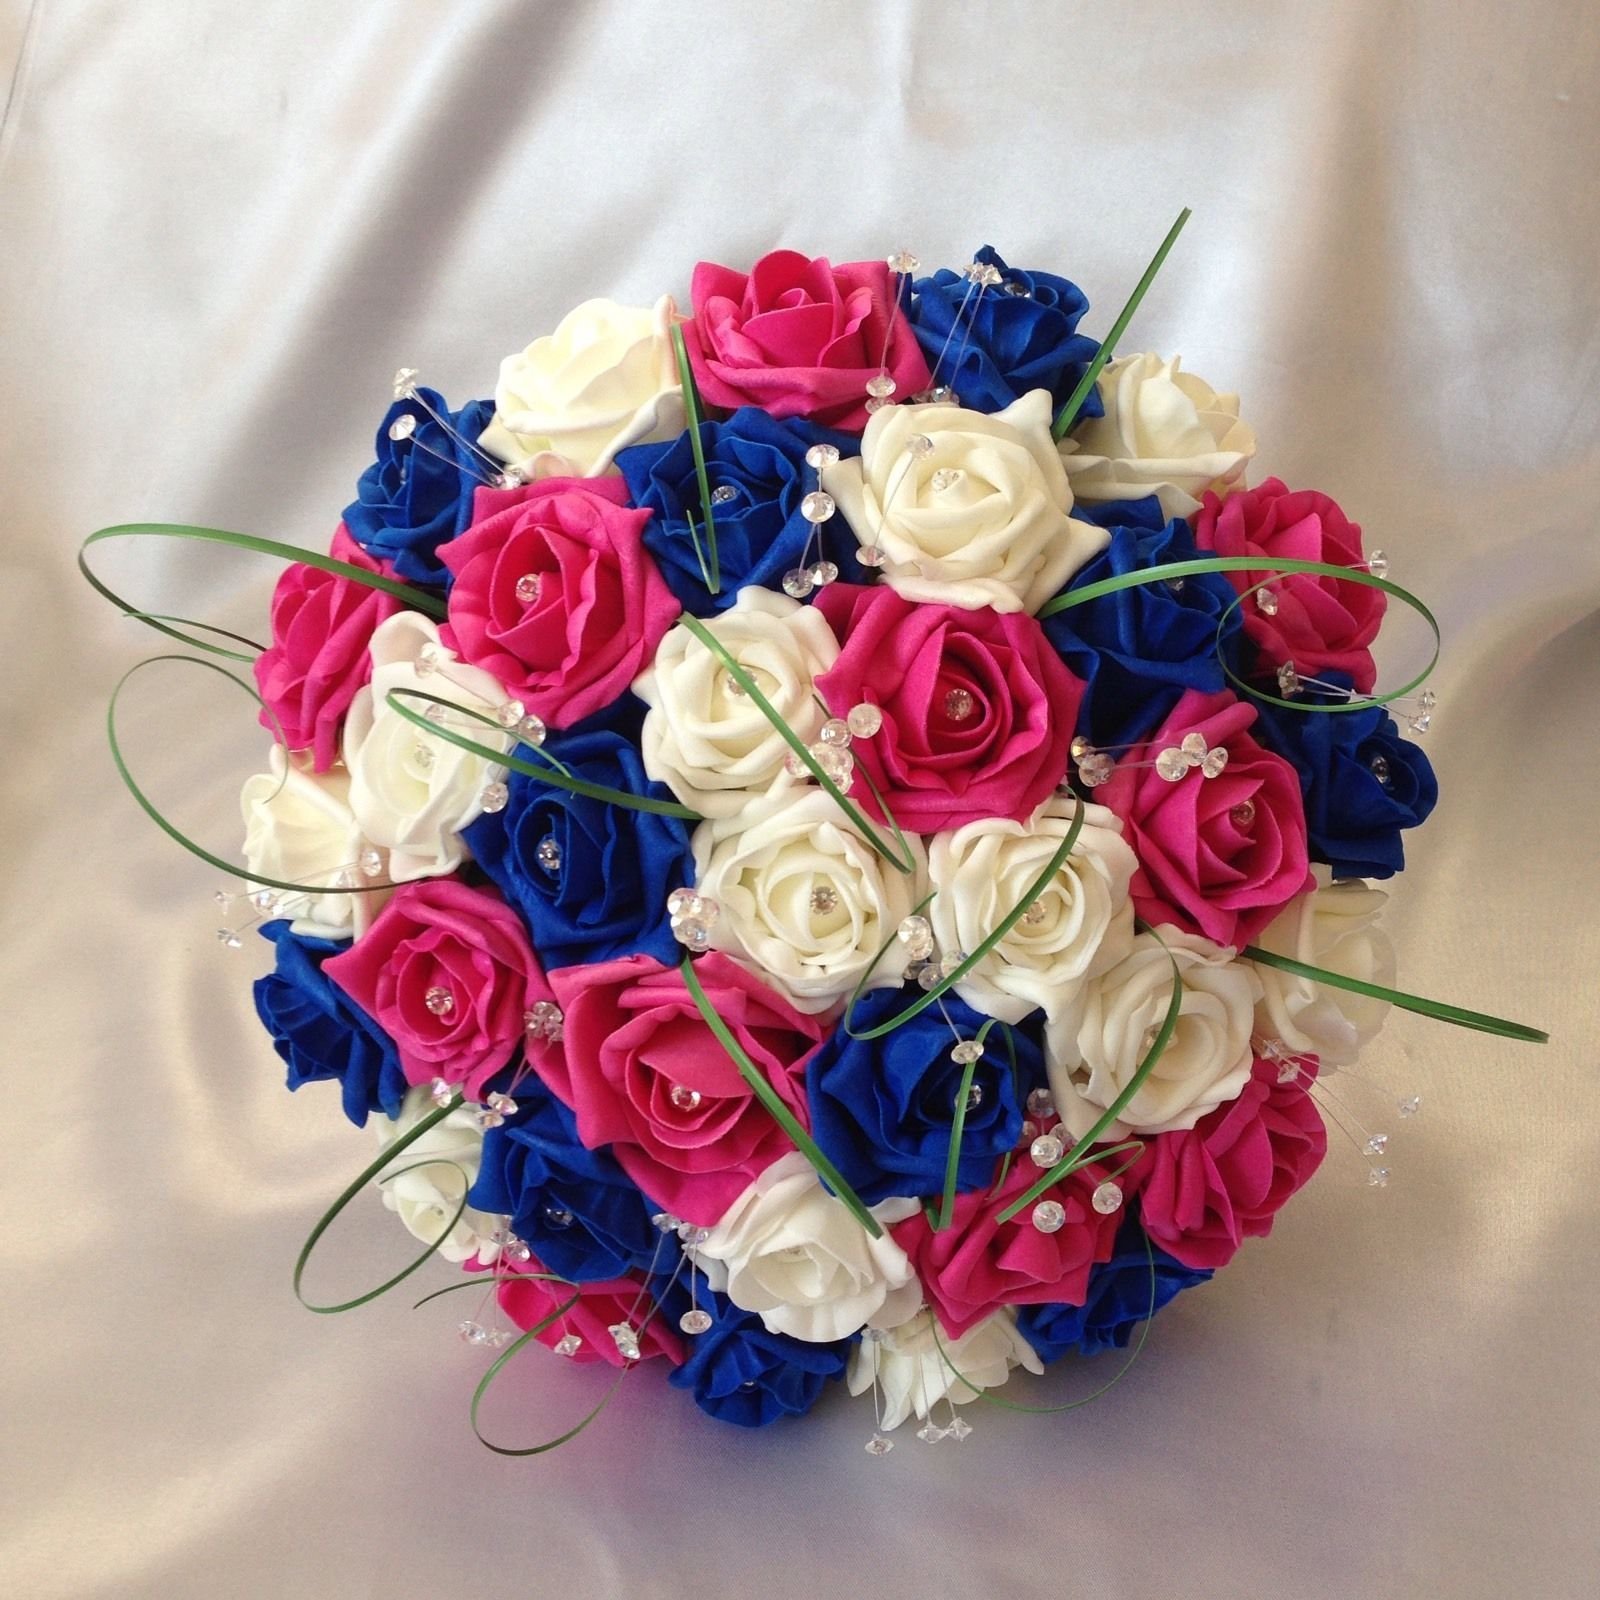 Wedding flowers artificial ivory hot pink royal blue bridesmaid rose wedding flowers artificial ivory hot pink royal blue bridesmaid rose bouquets mightylinksfo